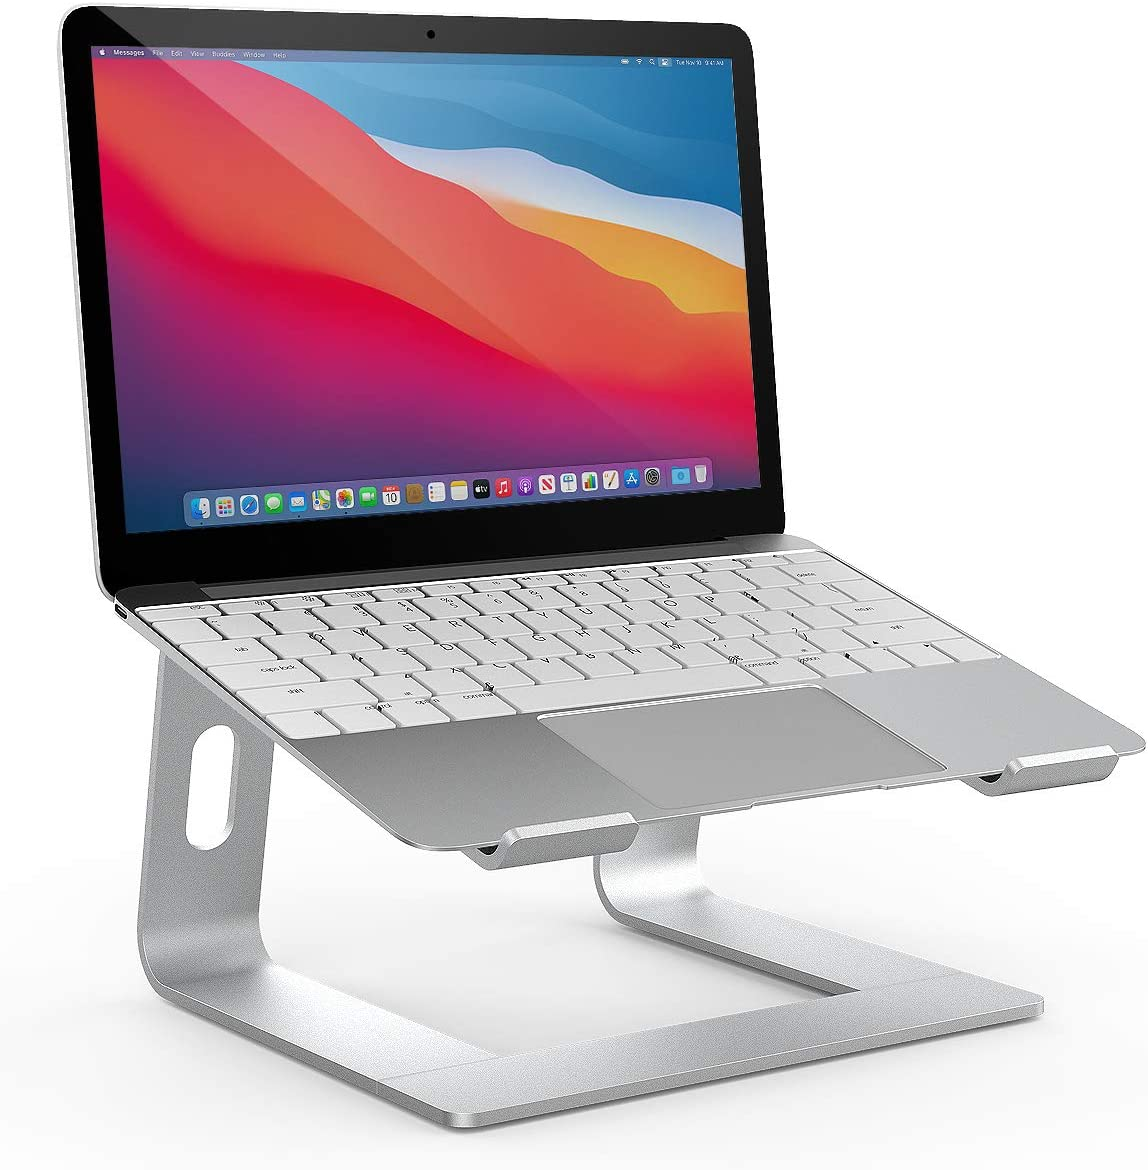 Trendy Laptop Stand for Desk, Detachable Laptop Riser Notebook Holder Stand, Ergonomic Aluminum Laptop Elevated Stand, for MacBook Air Pro, Dell XPS, HP, Lenovo, ASUS More 10-15.6